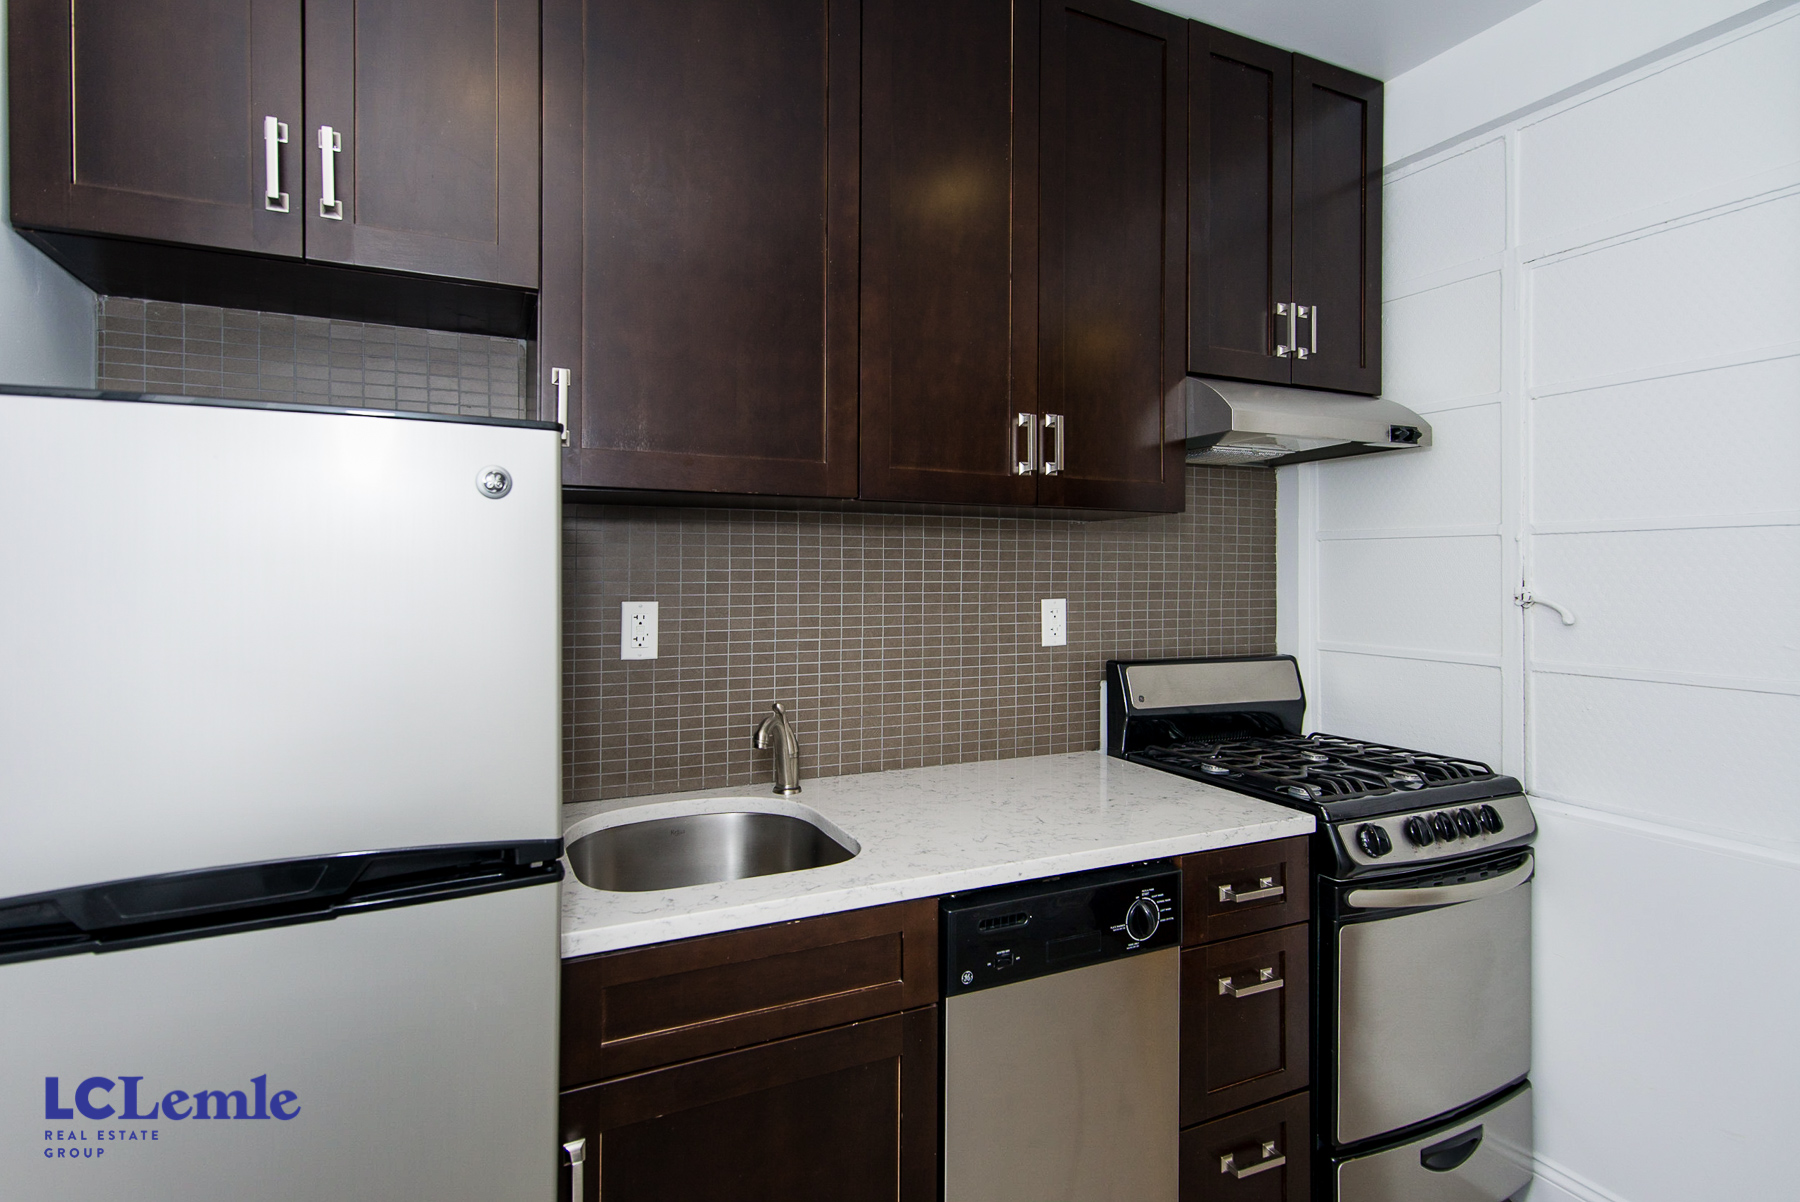 1 LC Lemle No Fee Apartments NYC - LC Lemle Real Estate ...